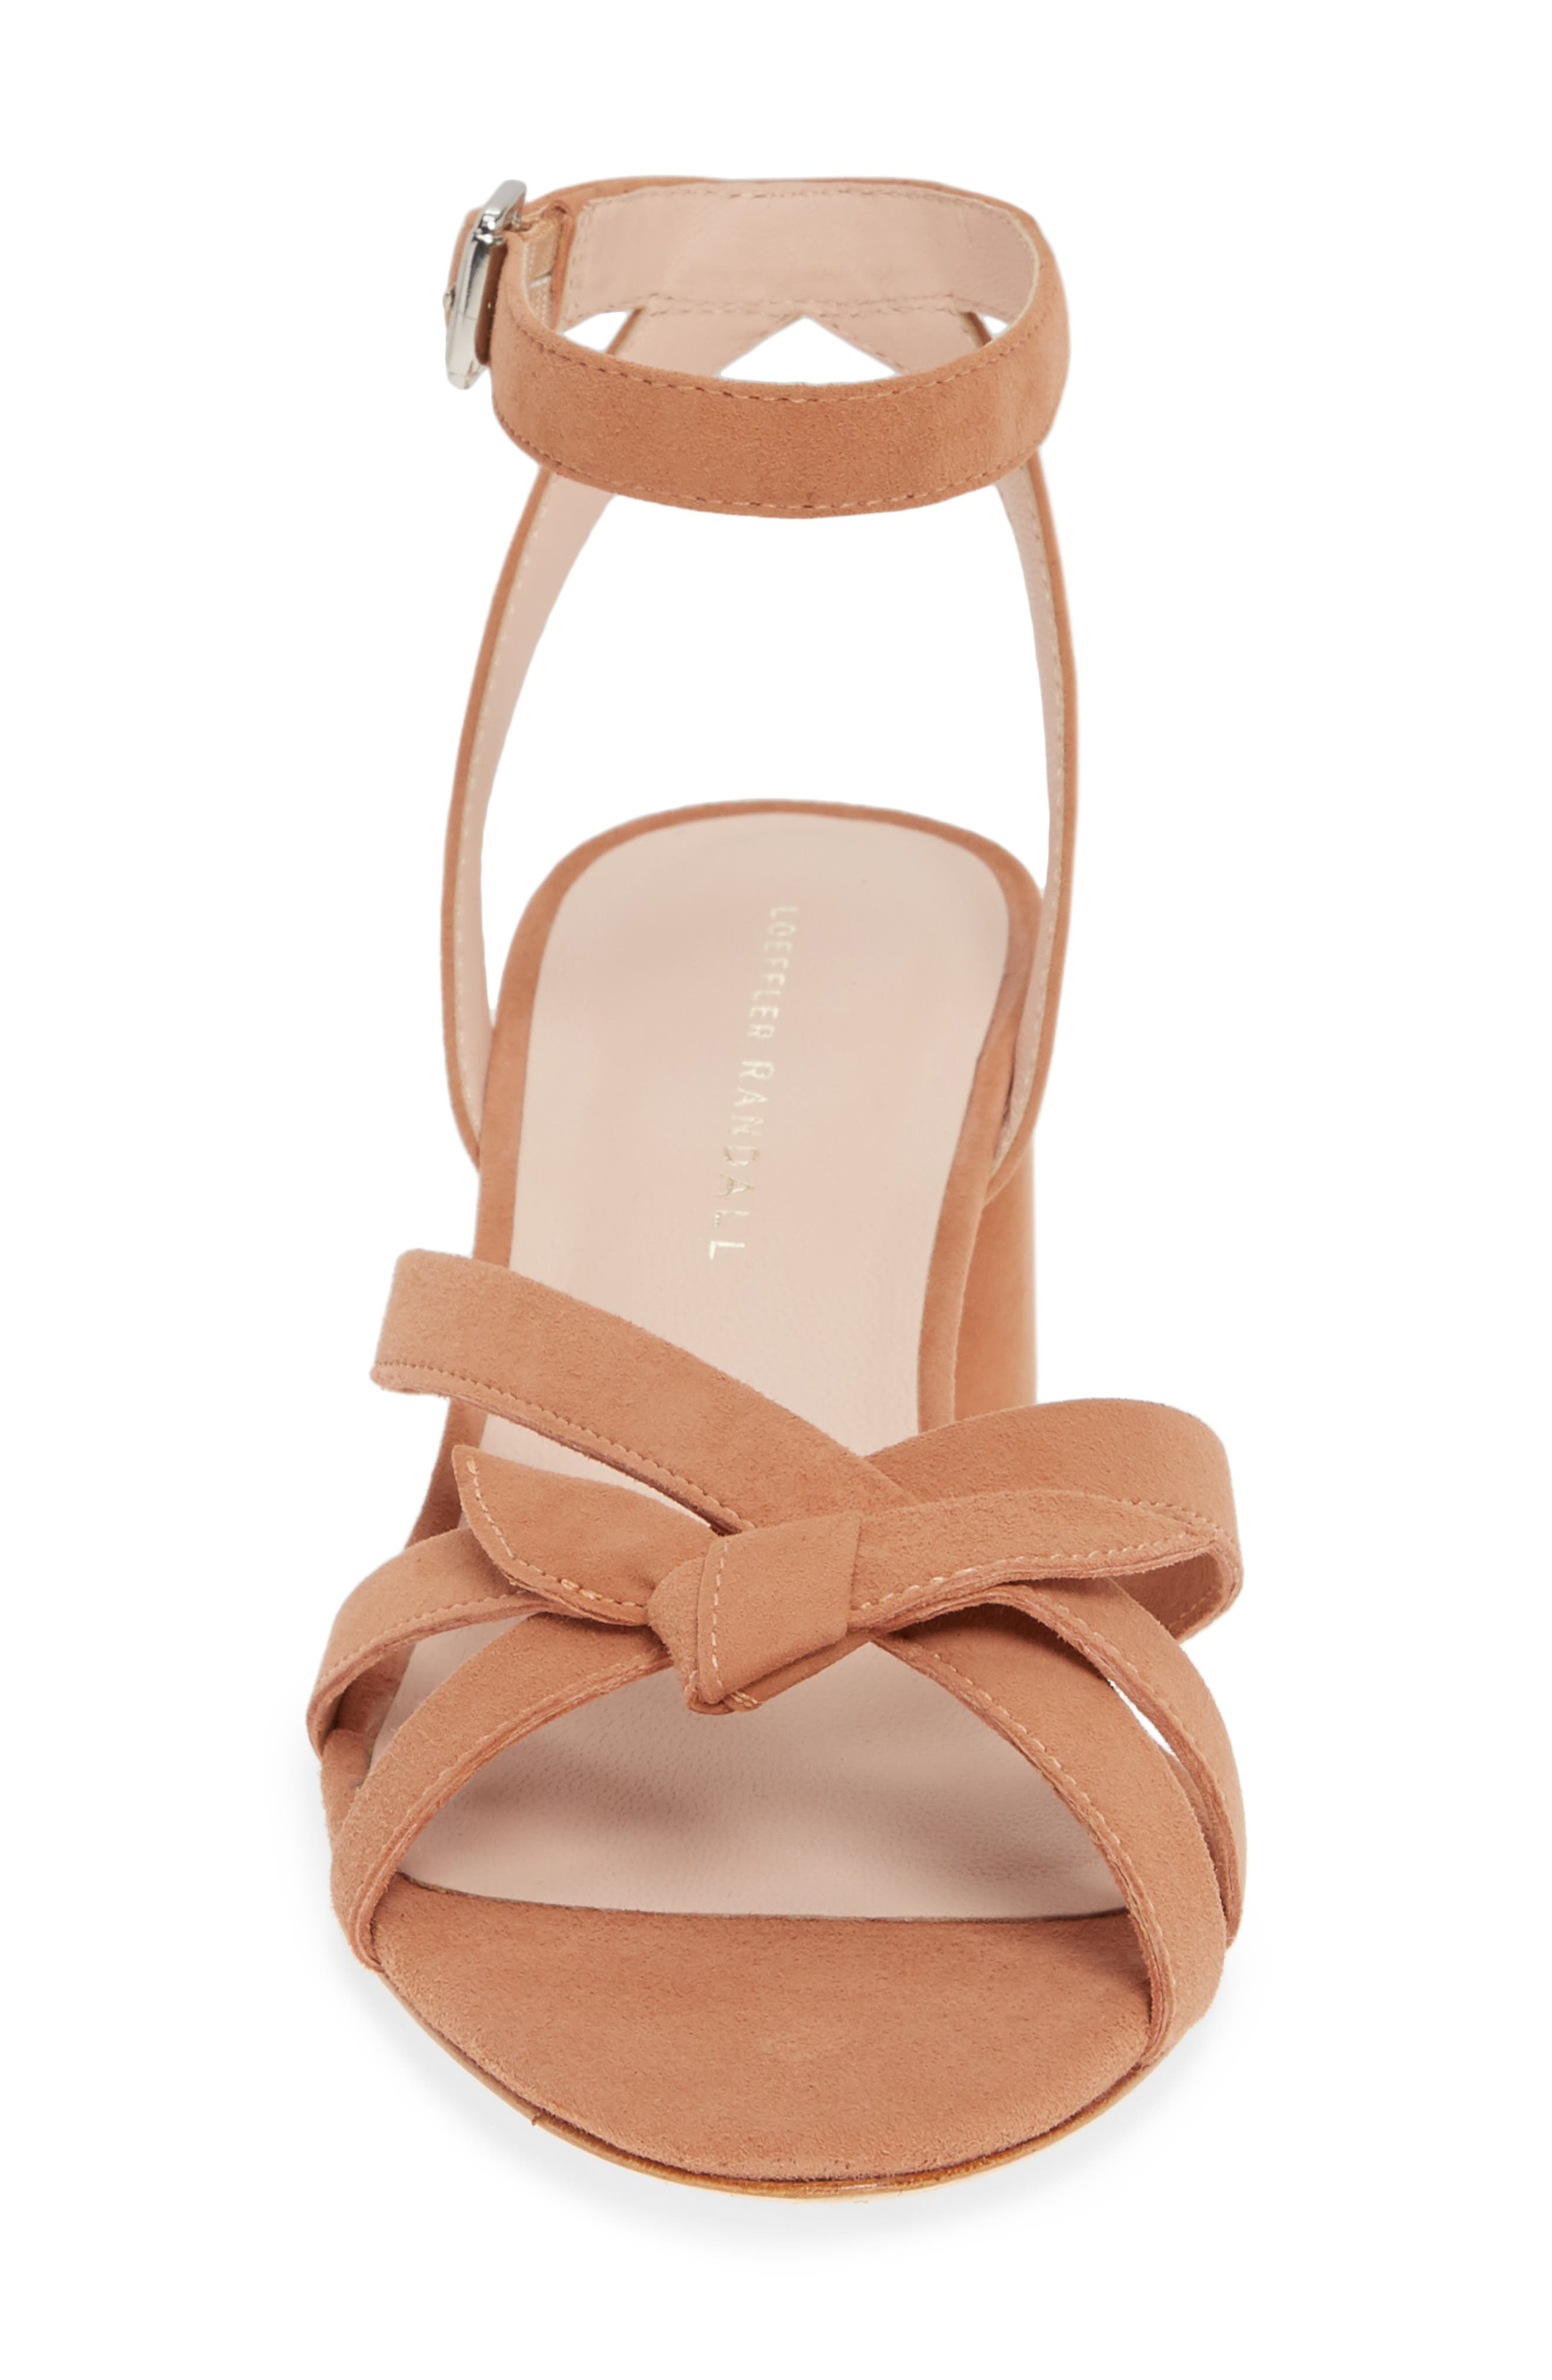 LOEFFLER RANDALL, Anny Knotted Sandal, Alternate thumbnail 4, color, COQUILLE